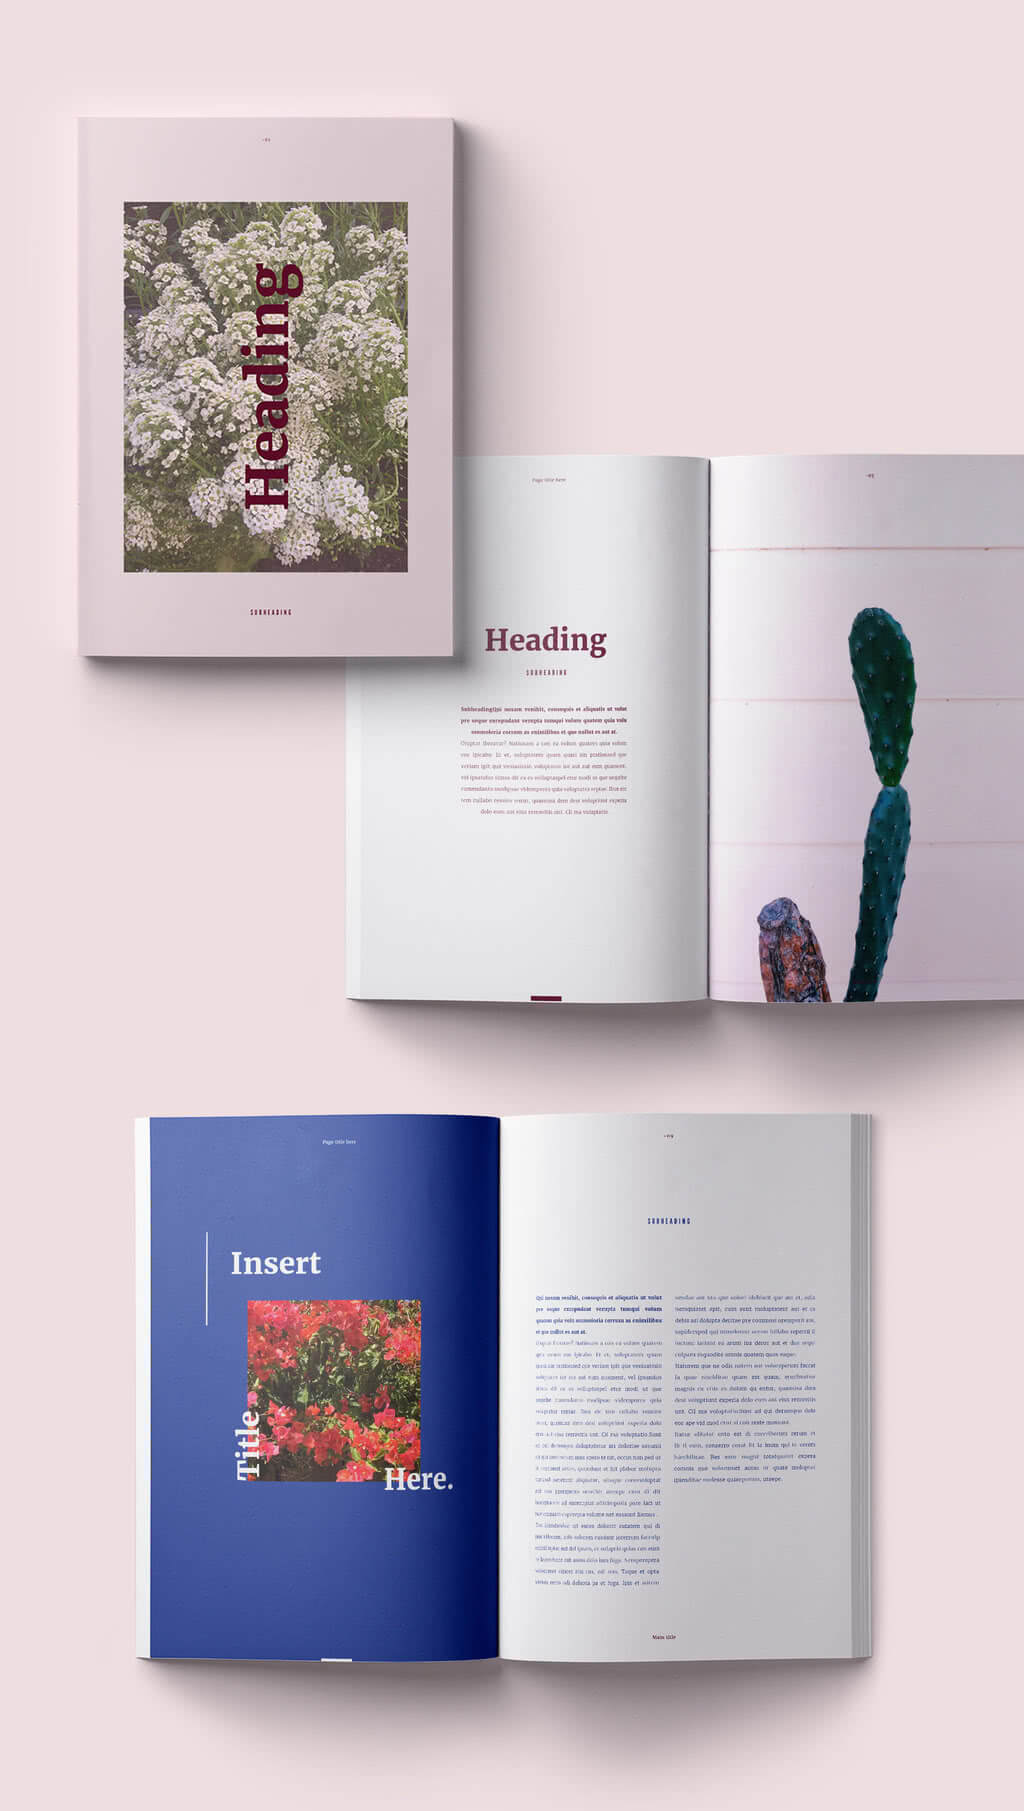 75 Fresh Indesign Templates And Where To Find More regarding Brochure Template Indesign Free Download